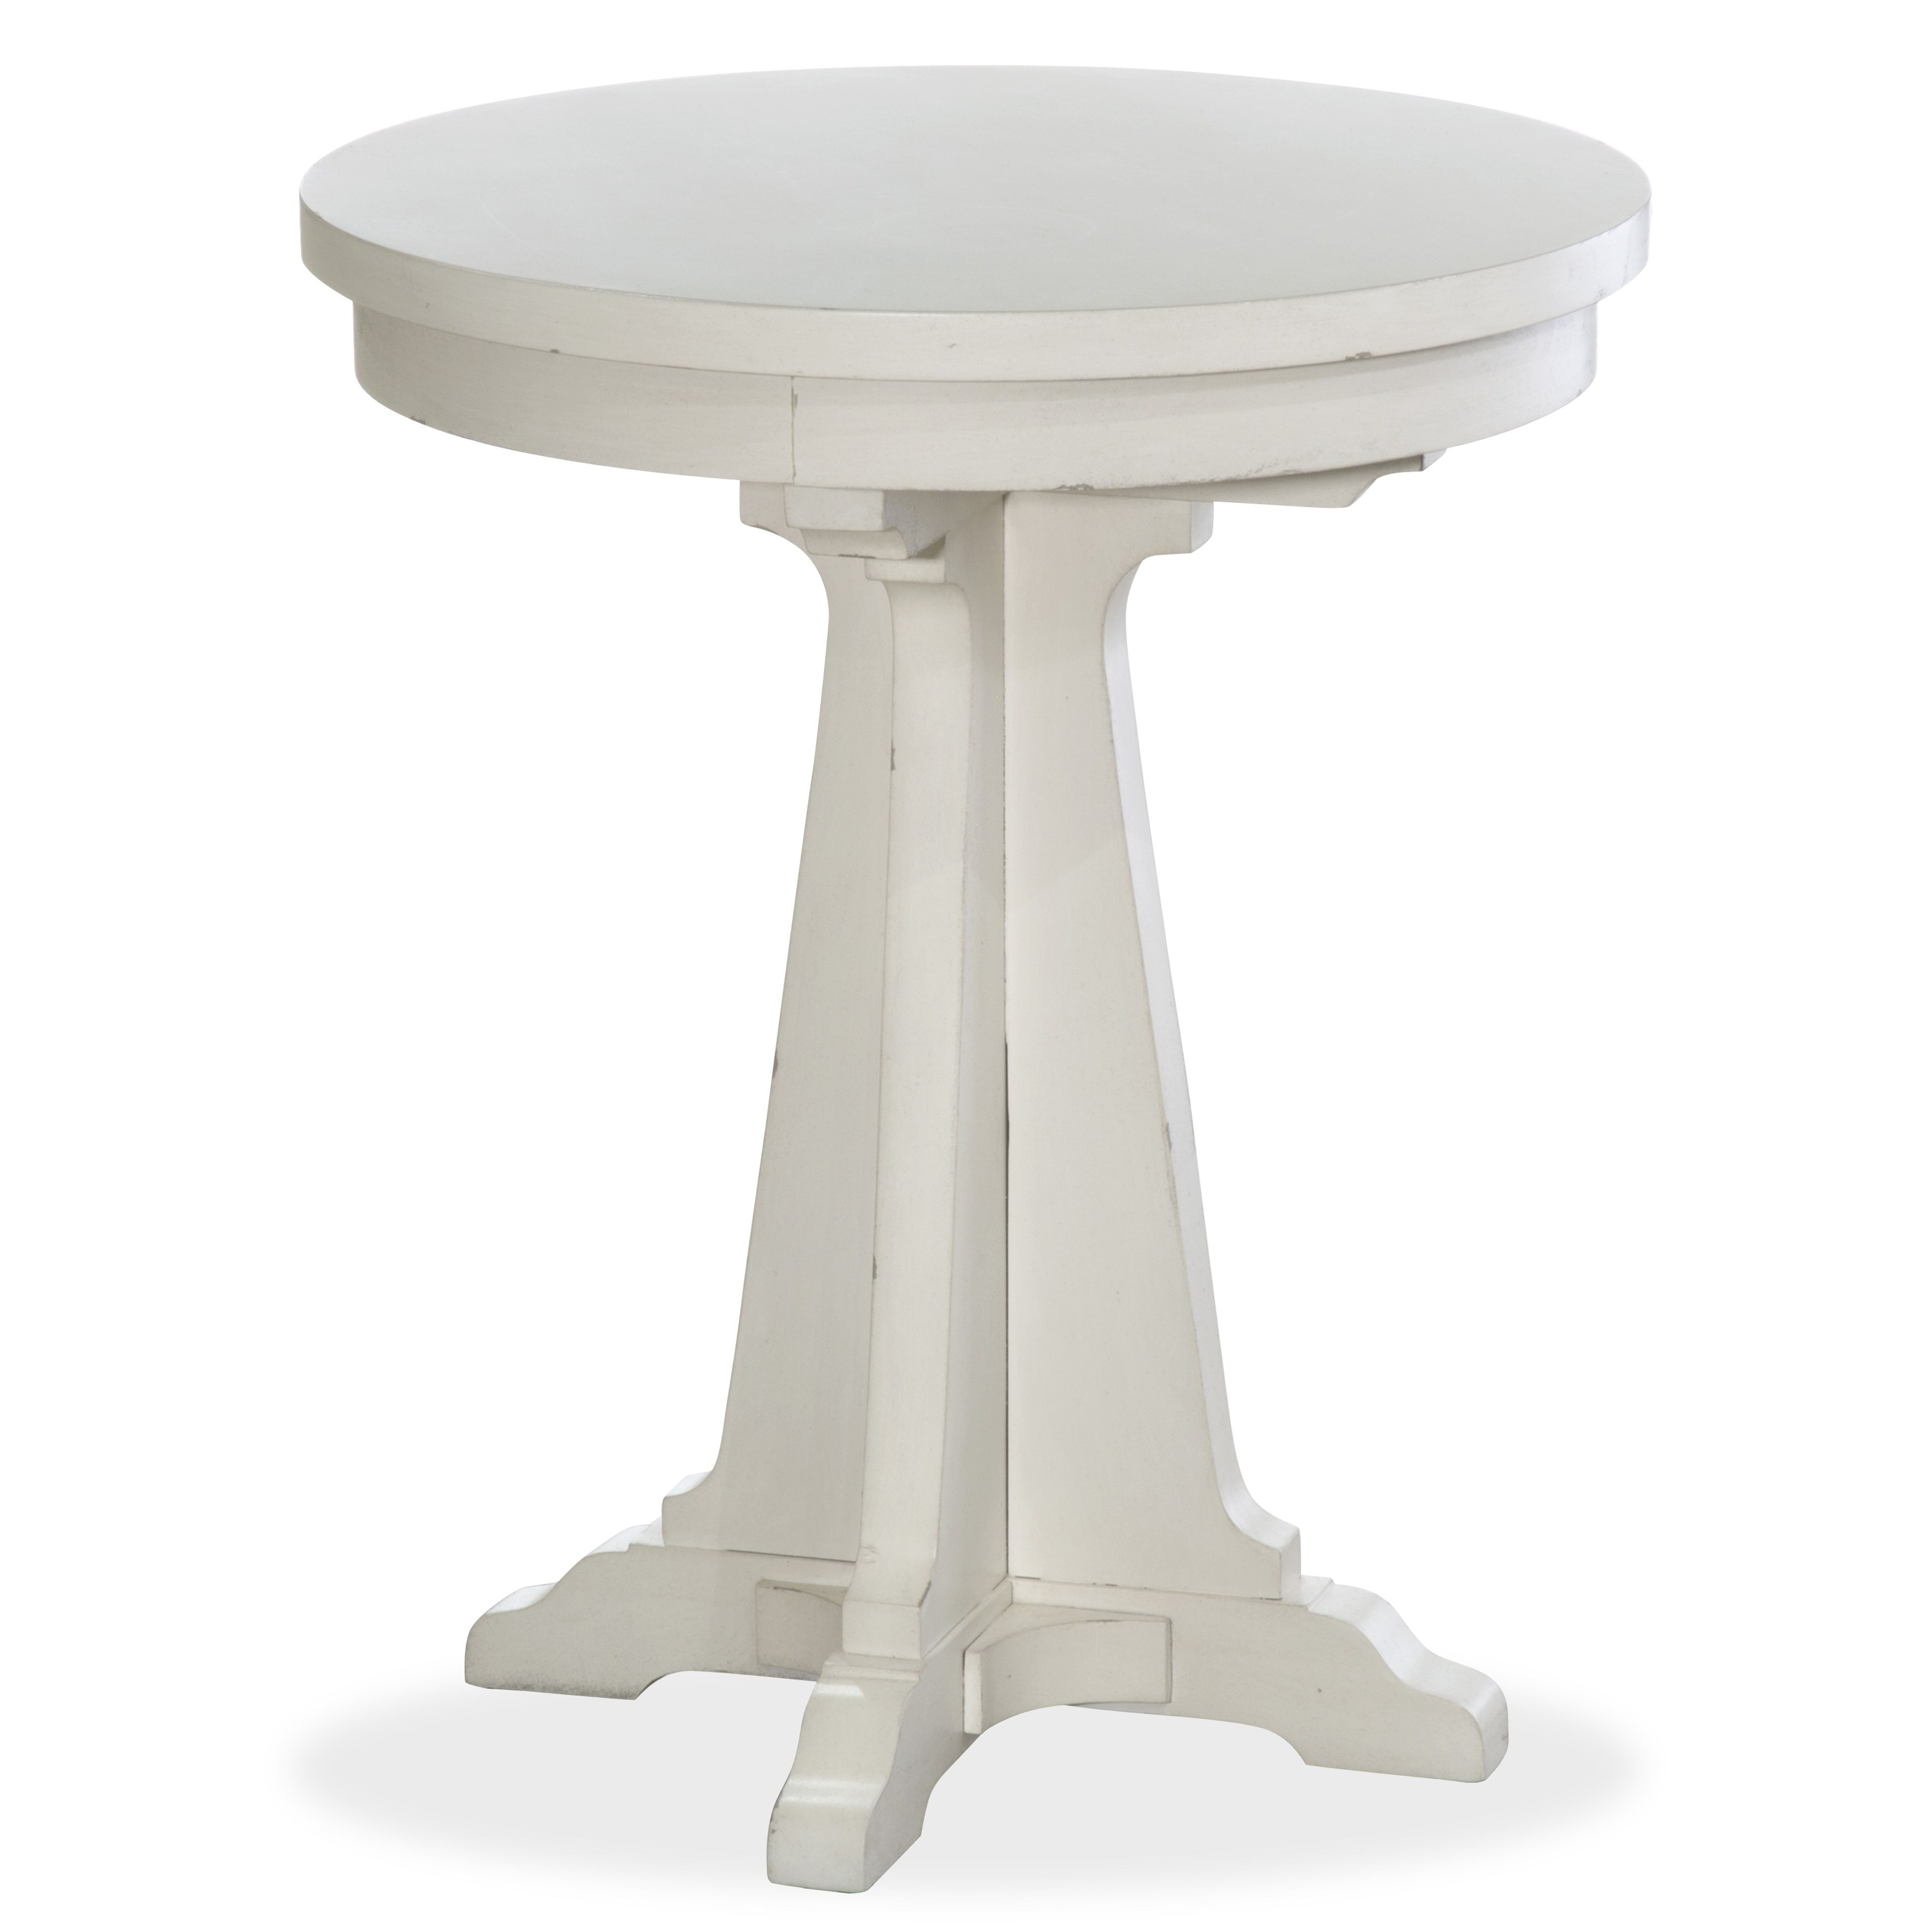 coventry lane farmhouse antique white round accent table free pedestal shipping today coffee small patio end swing cover throne for drums cushions floor cabinet butcher block